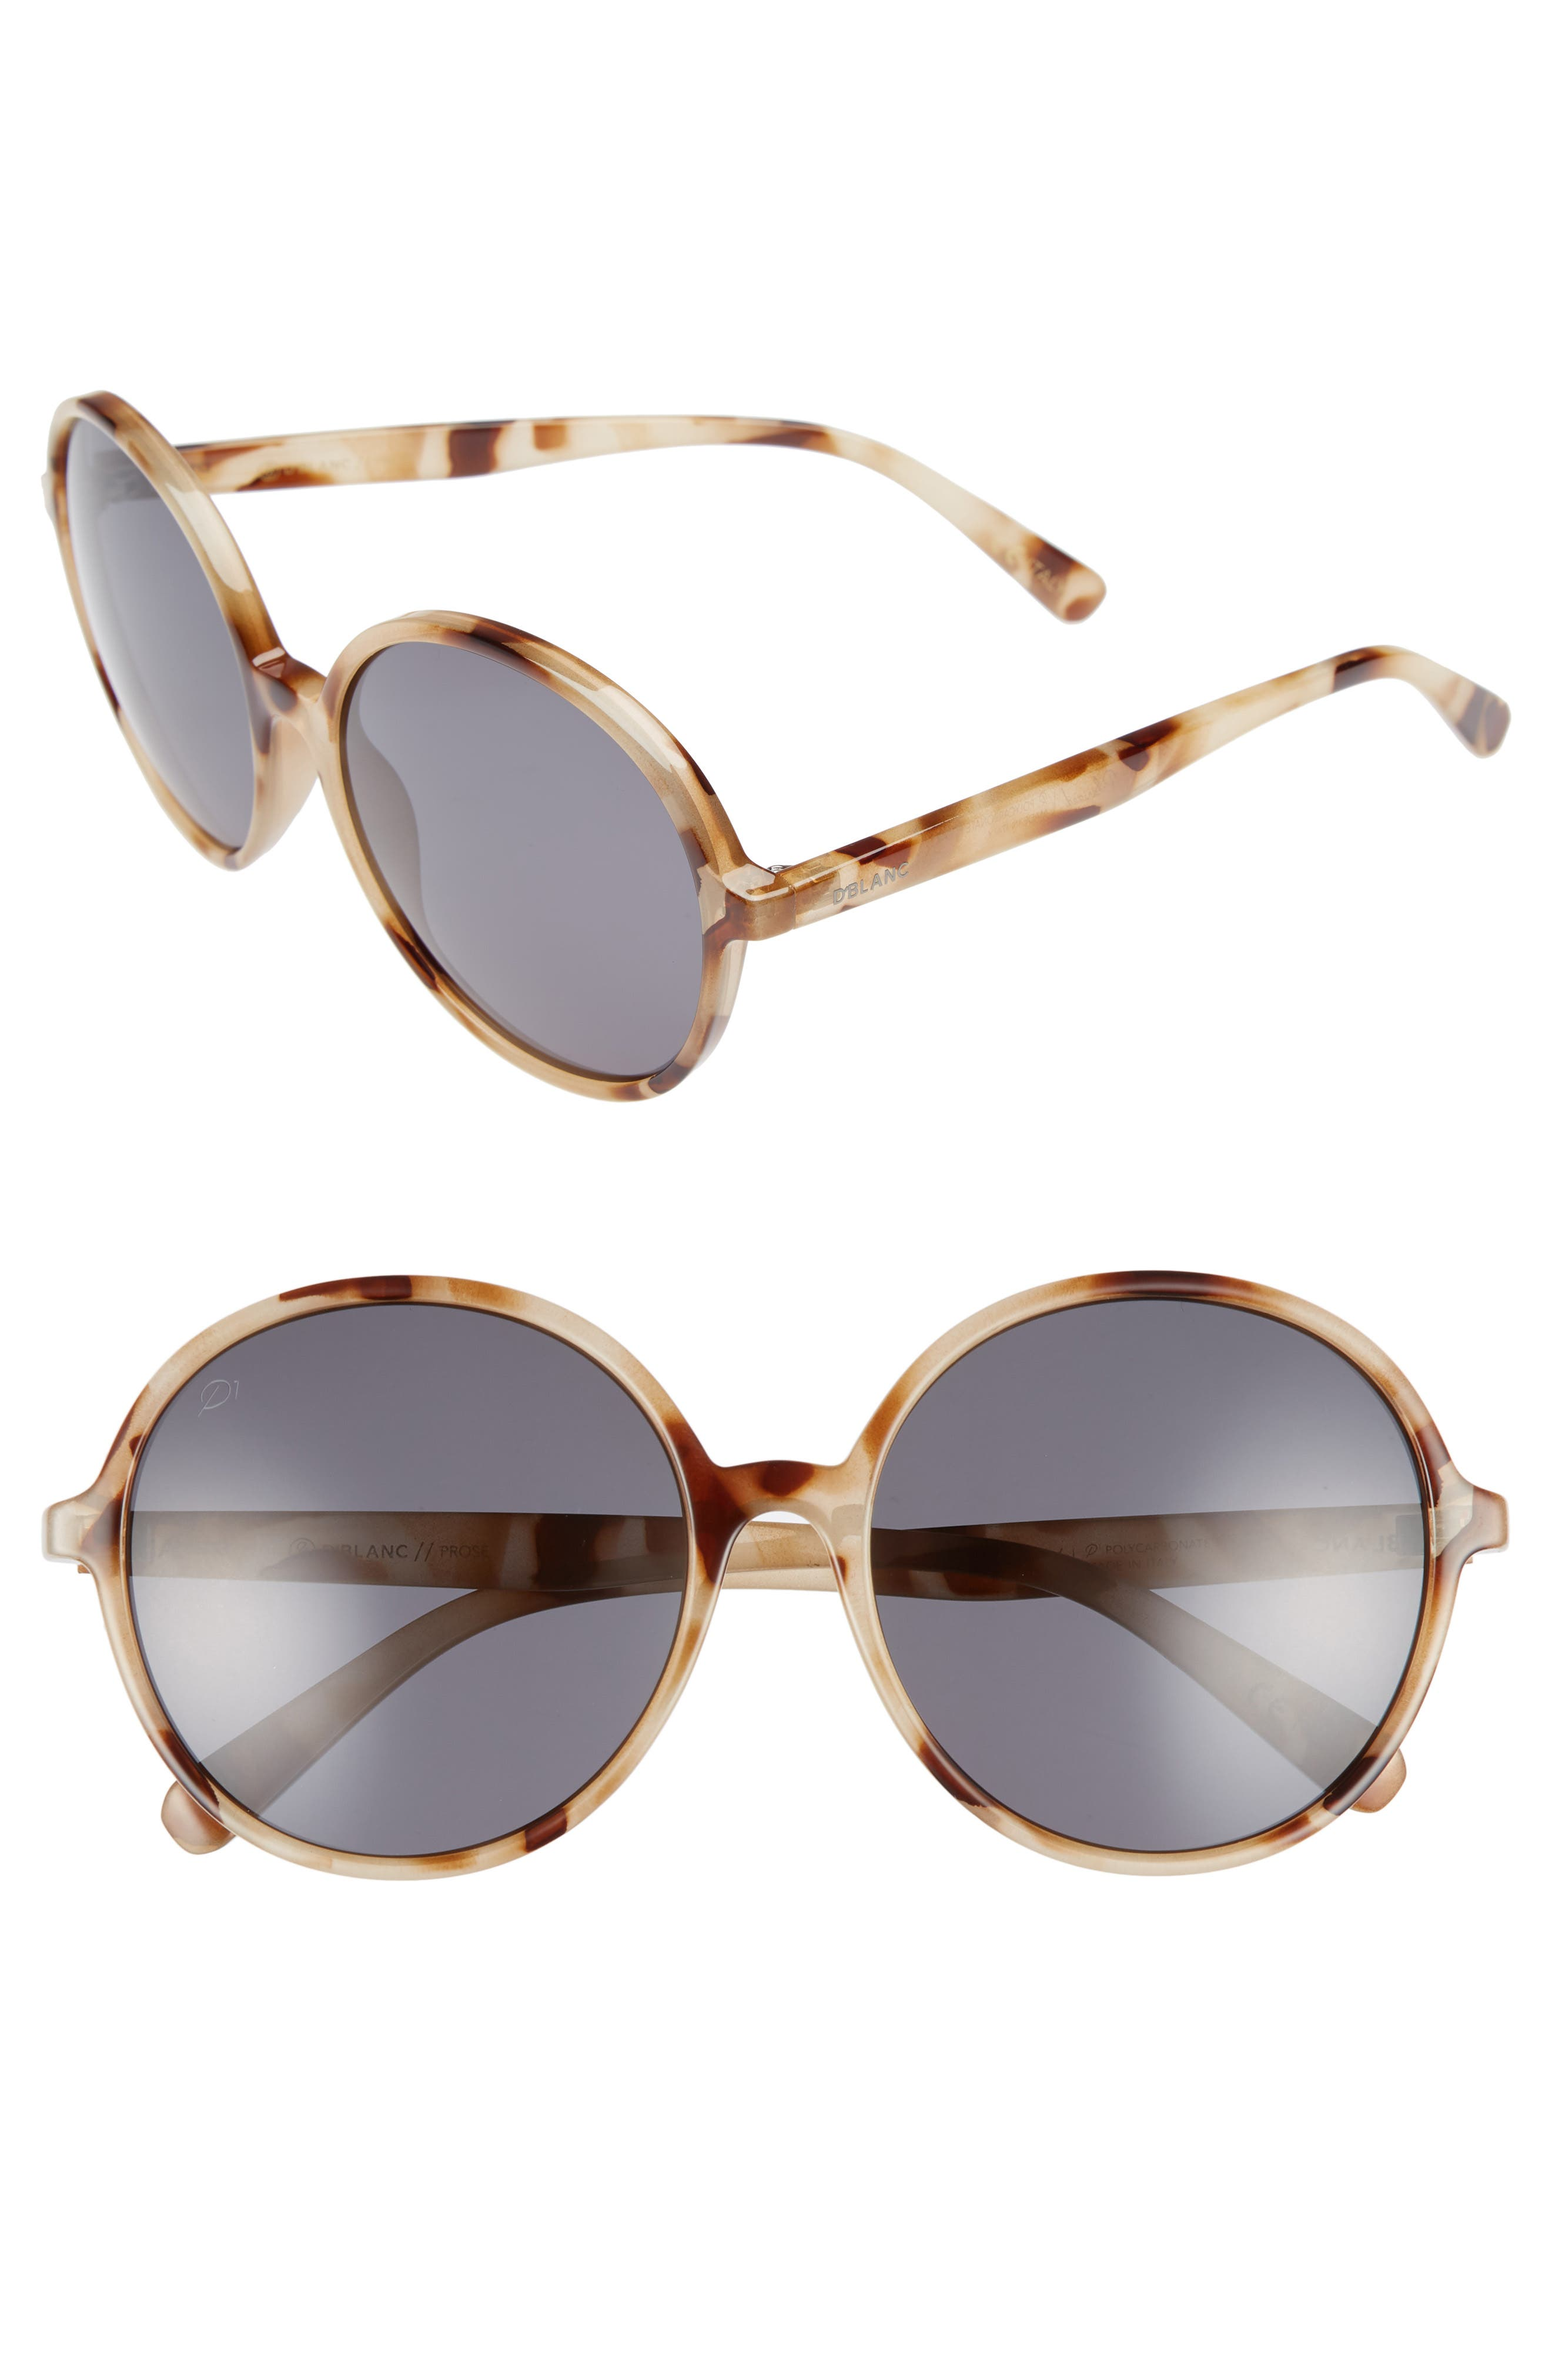 D'blanc Prose 59mm Round Sunglasses by Dblanc